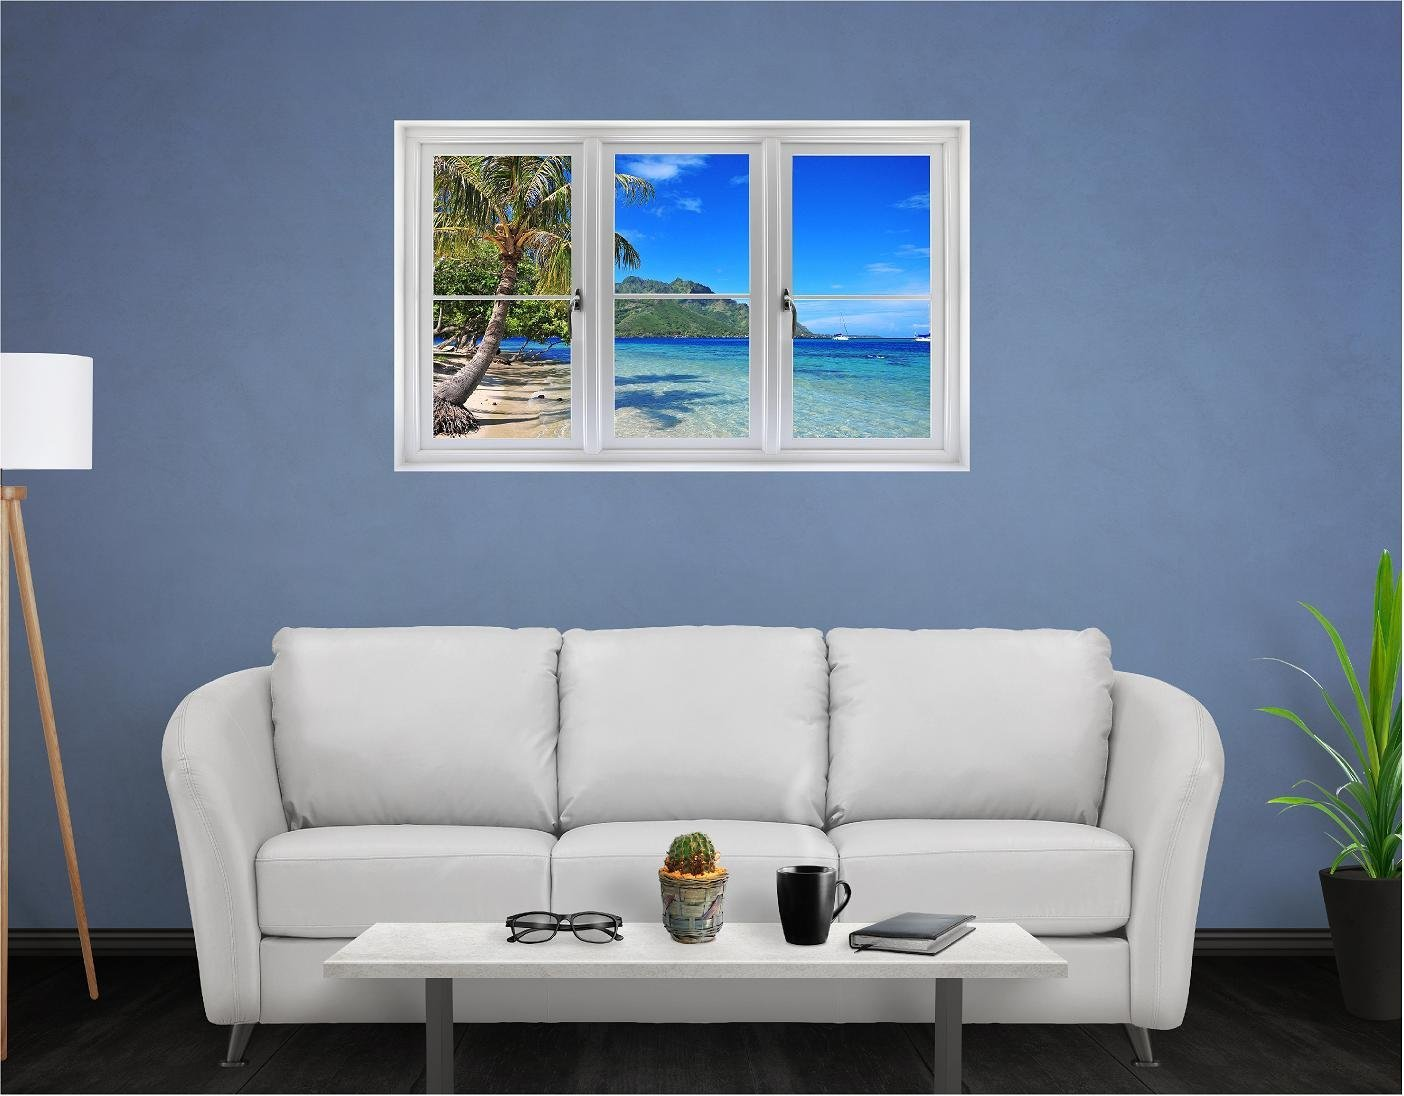 48'' Window Landscape Scene Instant View TAHITI TROPICAL ISLAND BEACH #1 Wall Sticker Decal Kids Room Mural Art Décor Graphic LARGE